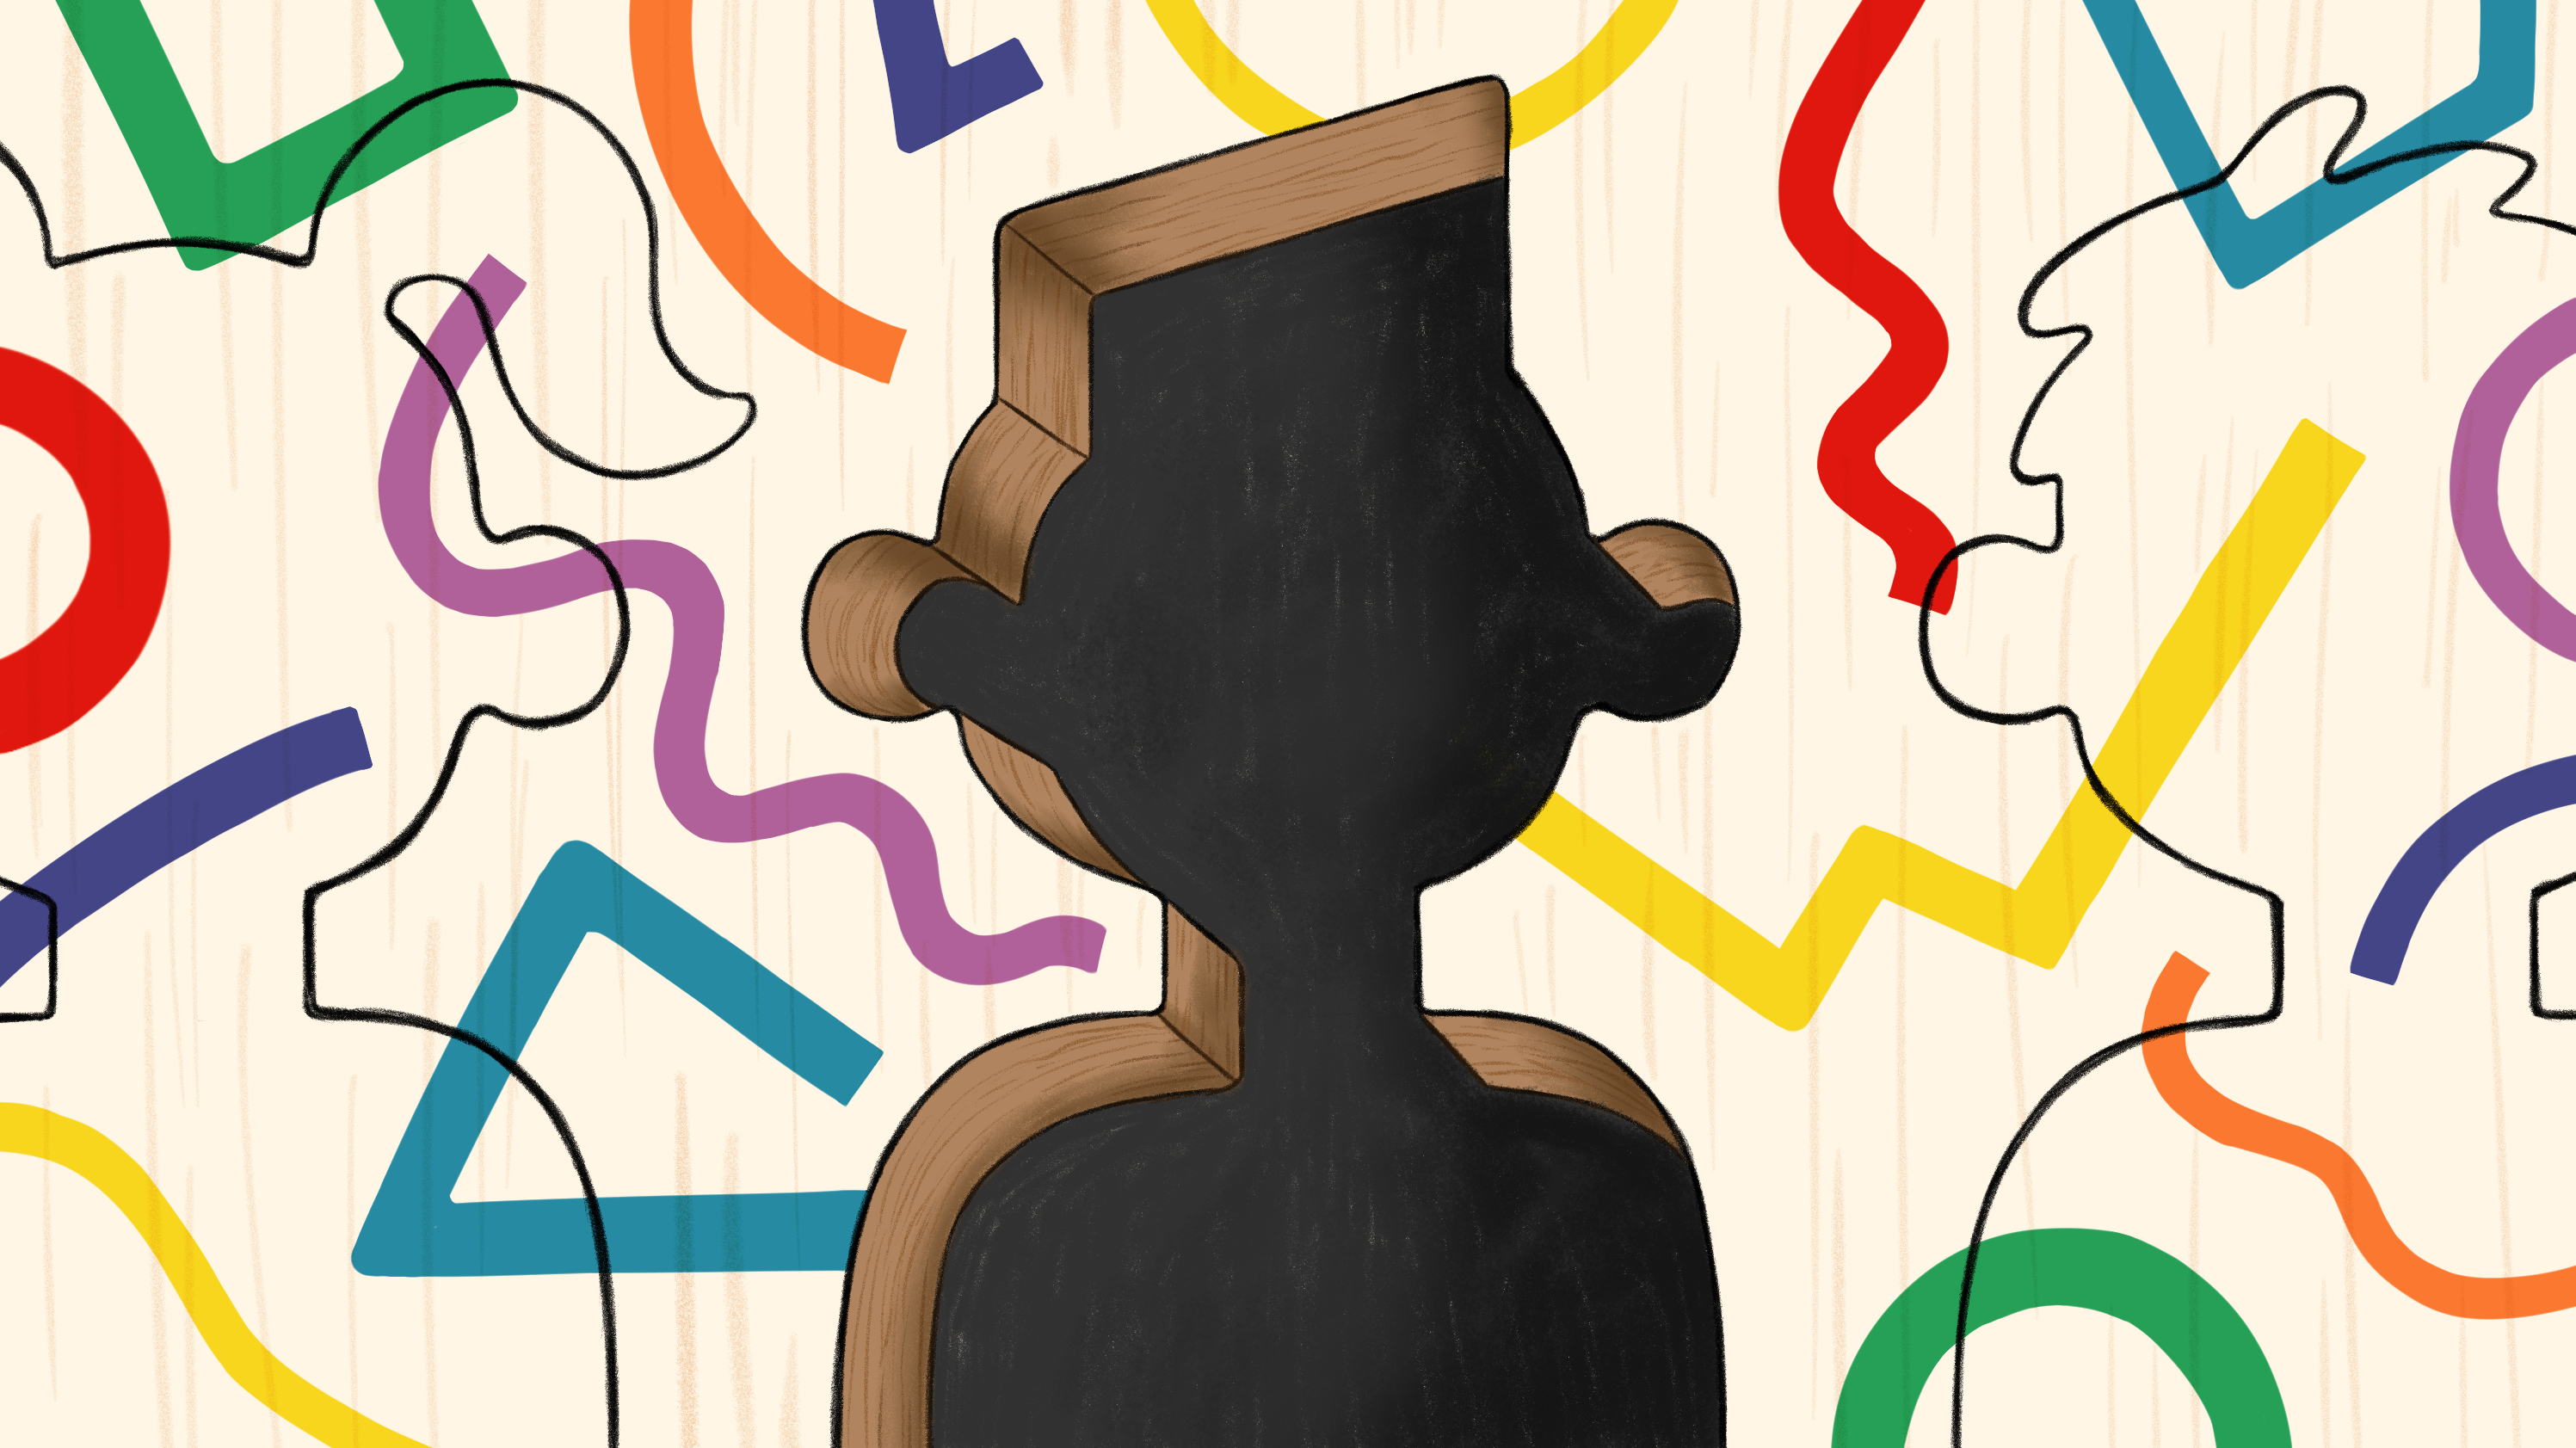 African American And Latino Children Often Diagnosed With Autism Asd Later Than Their White Peers Shots Health News Npr